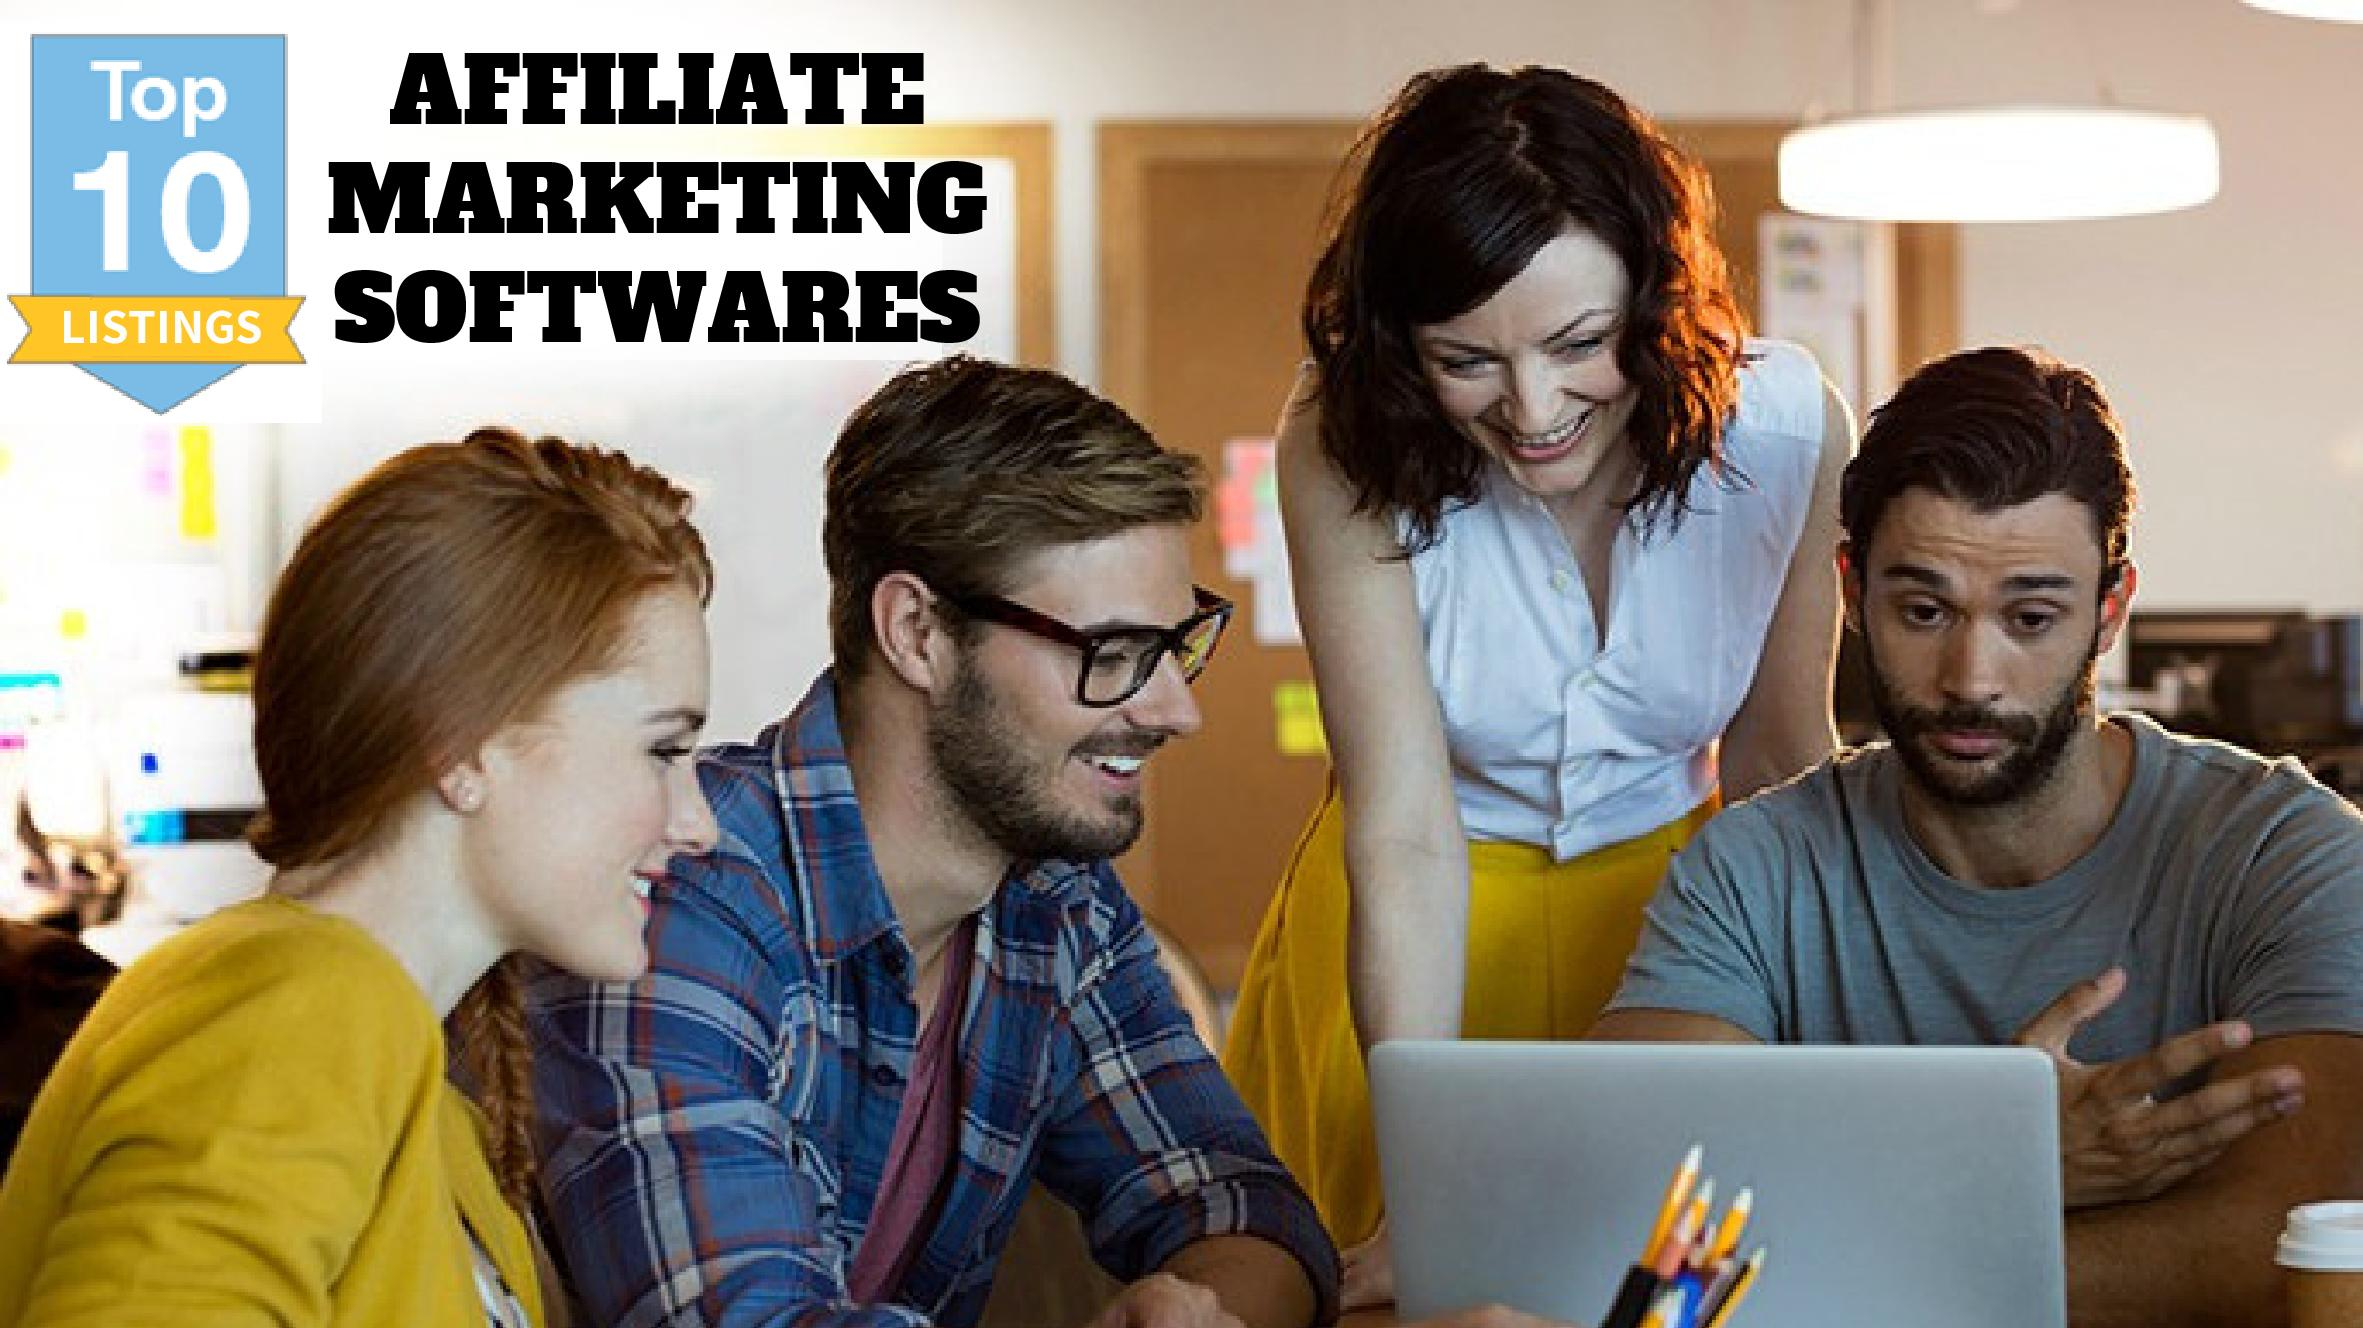 Top 10 affiliate marketing softwares